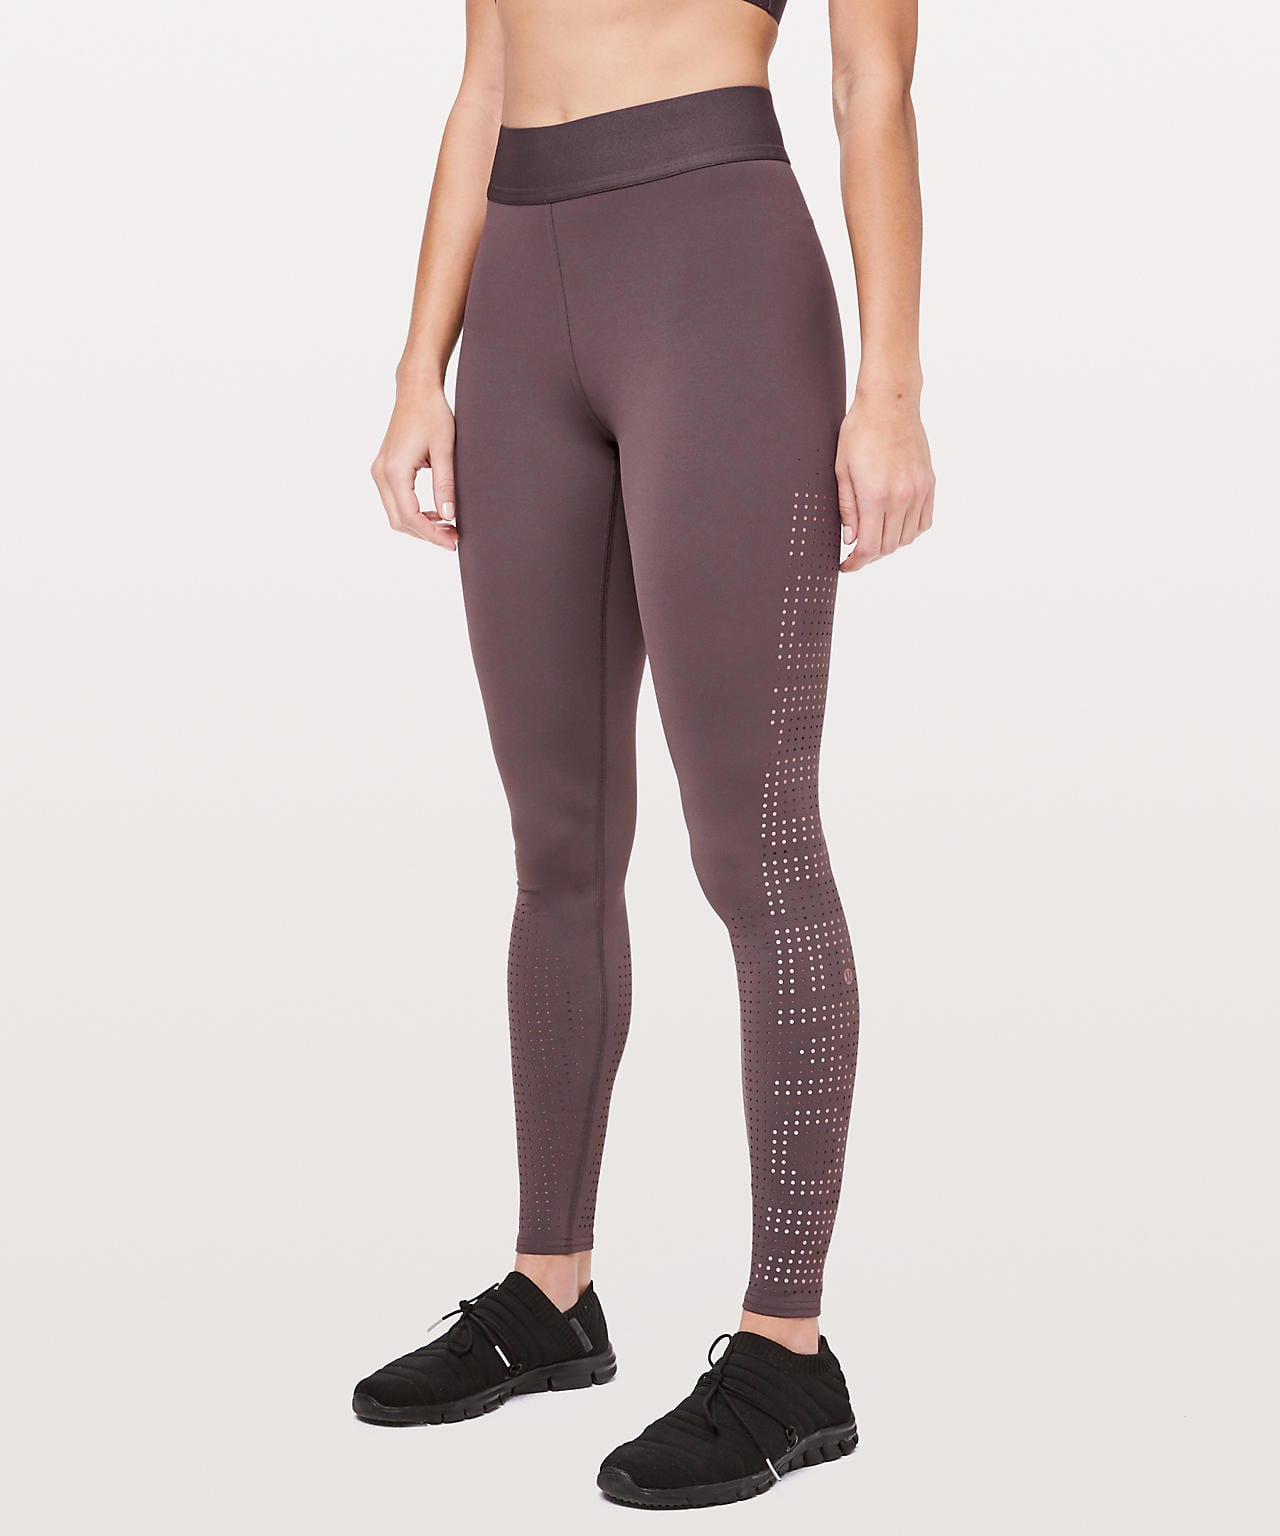 """Ride & Reflect Tight 28"""" lululemon X SoulCycle"""